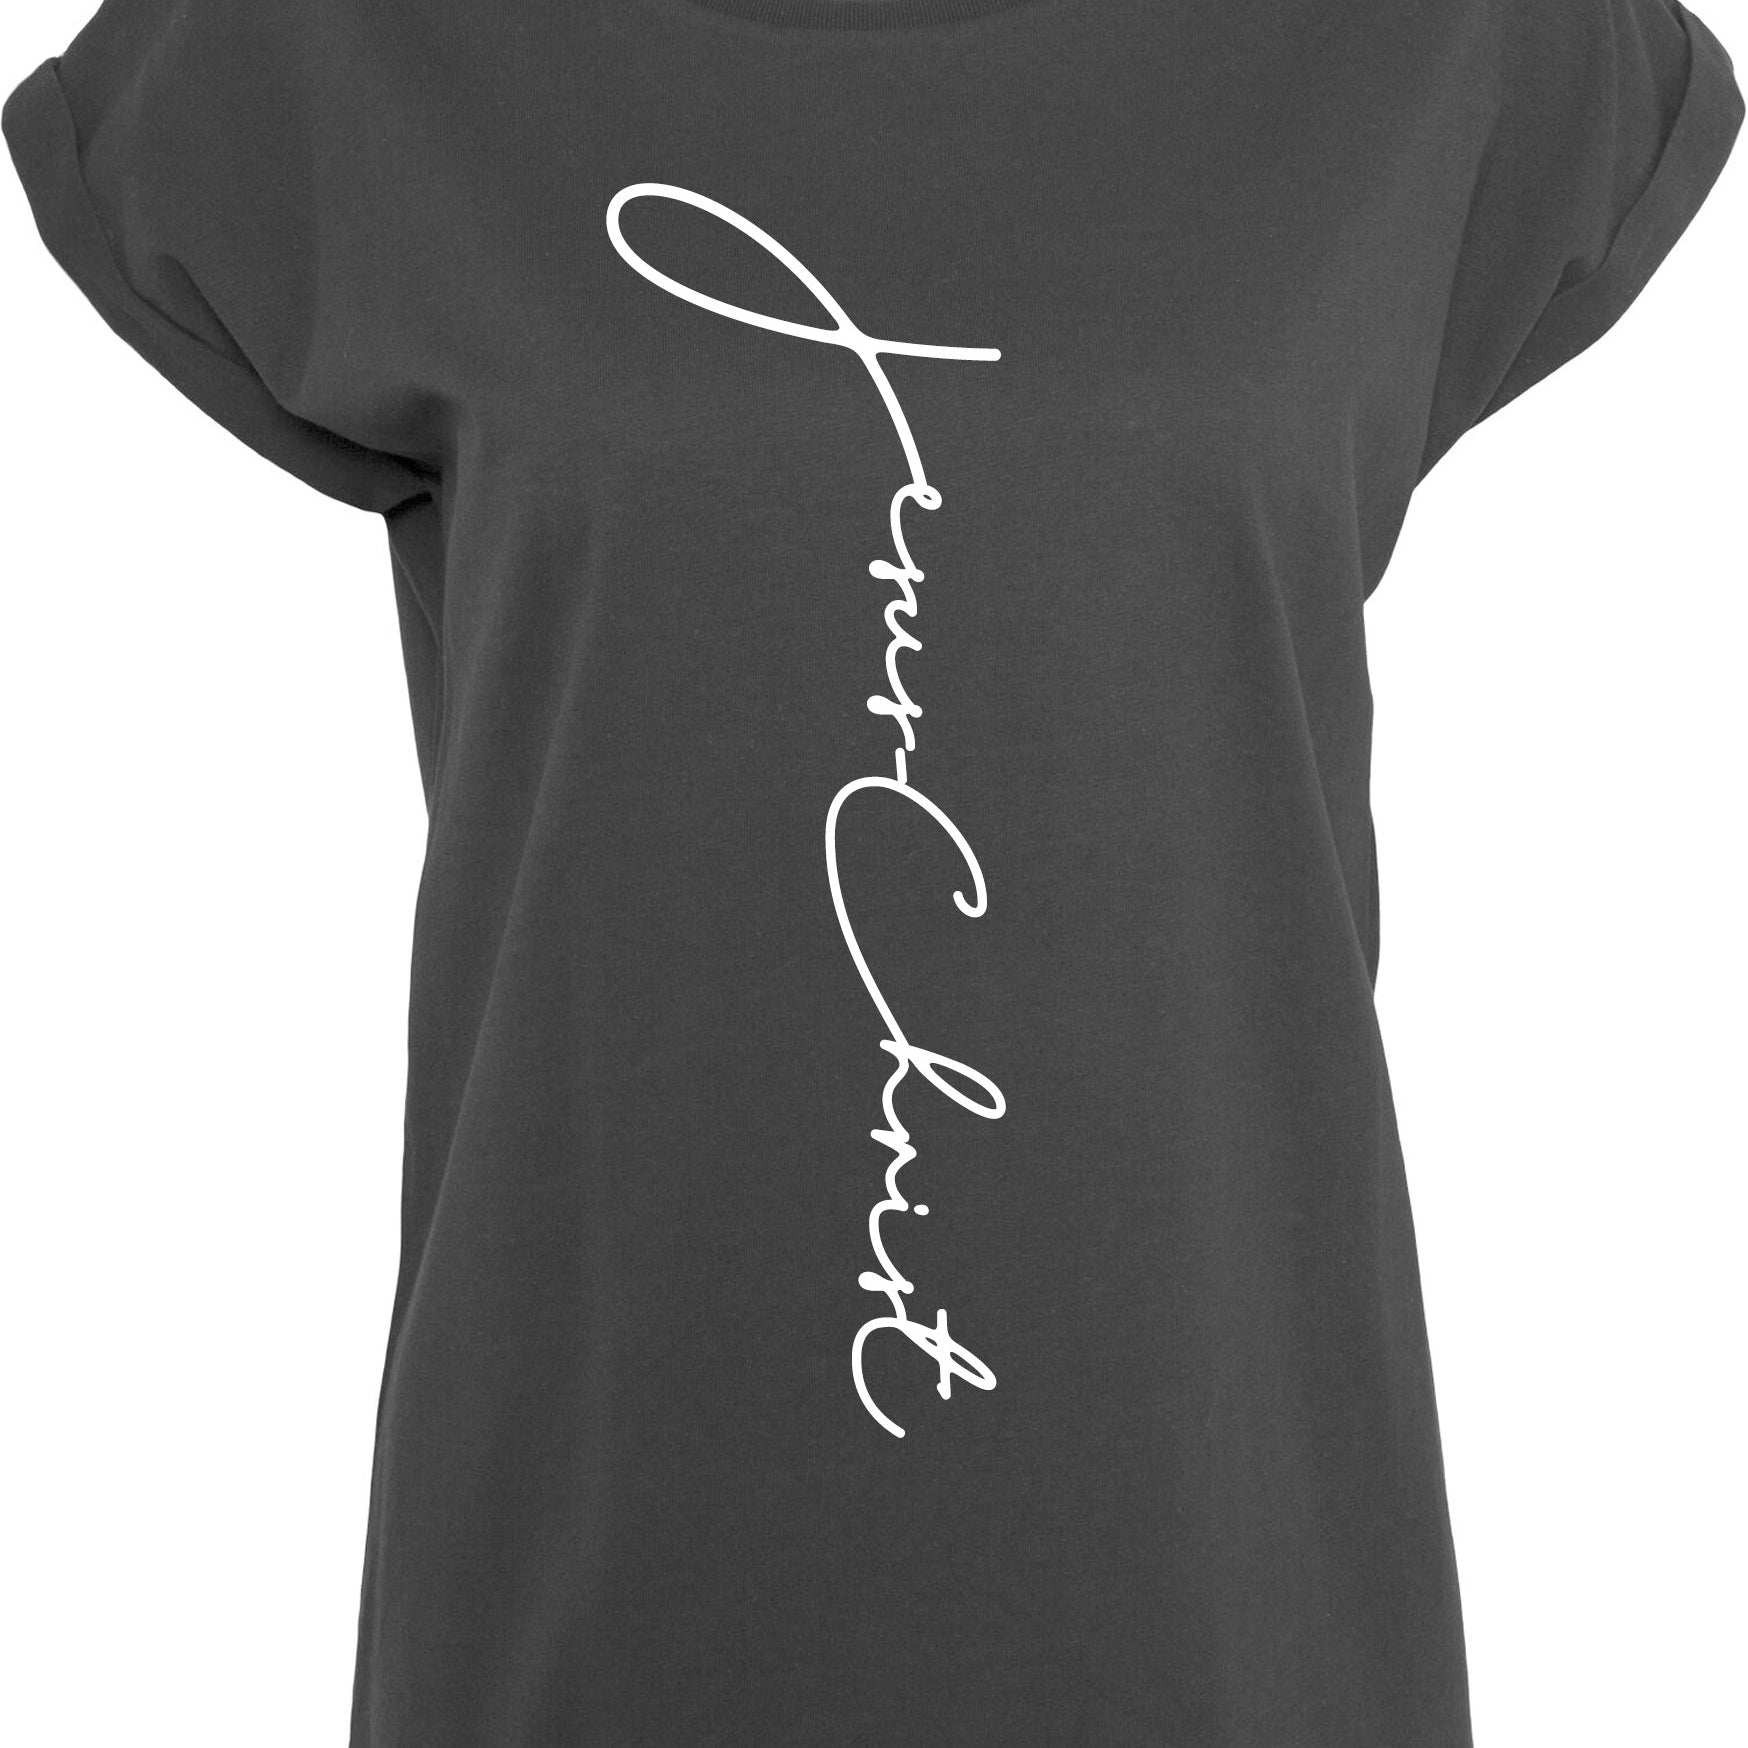 Womens JC extended shoulder Longline T-shirt S/S